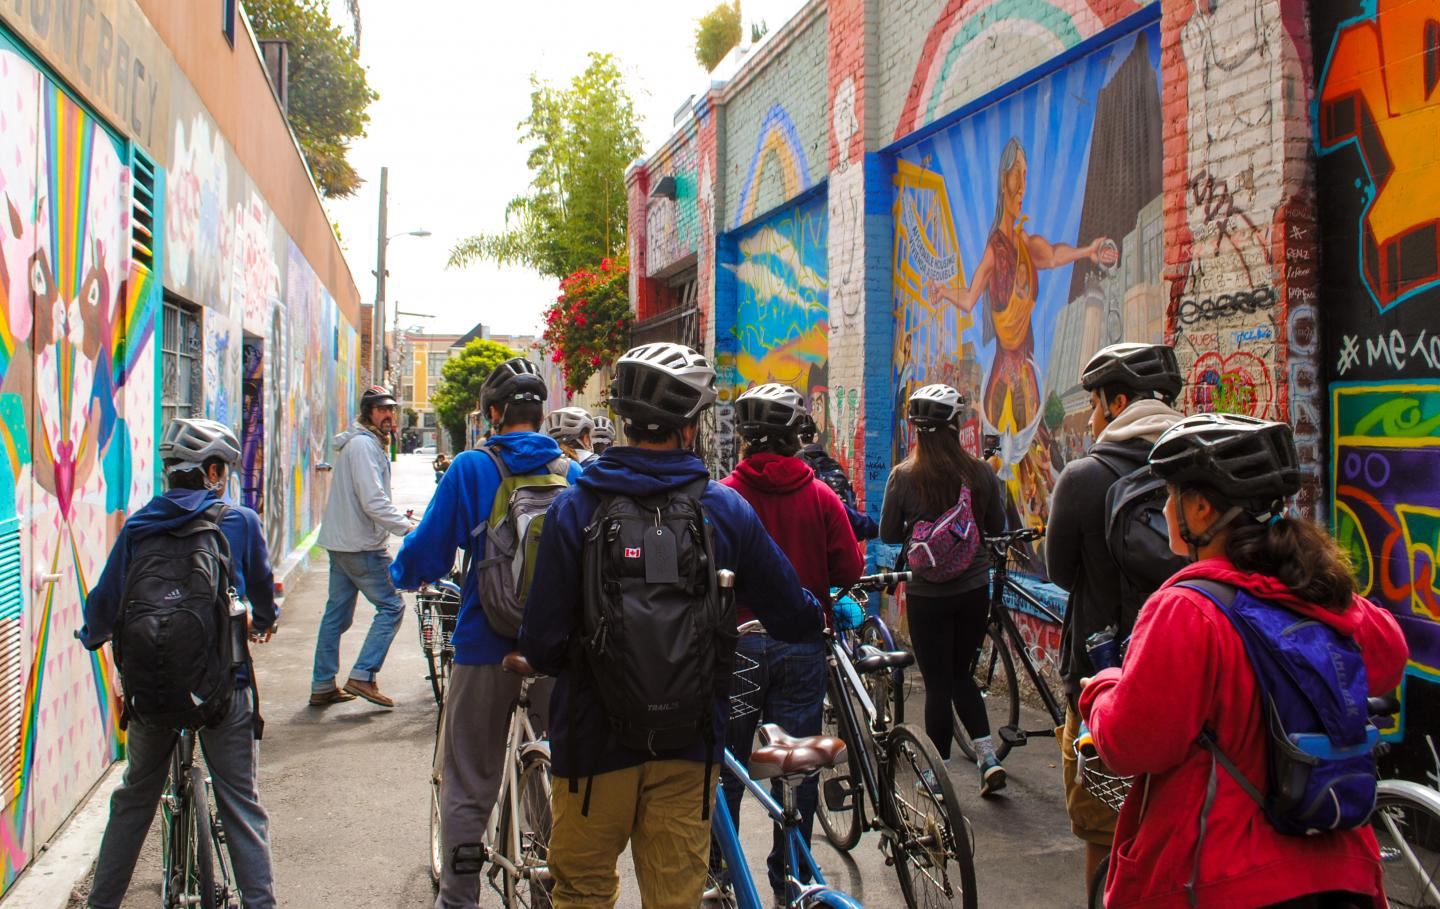 A group of students takes a city bike tour during their summer teen travel program in North America.